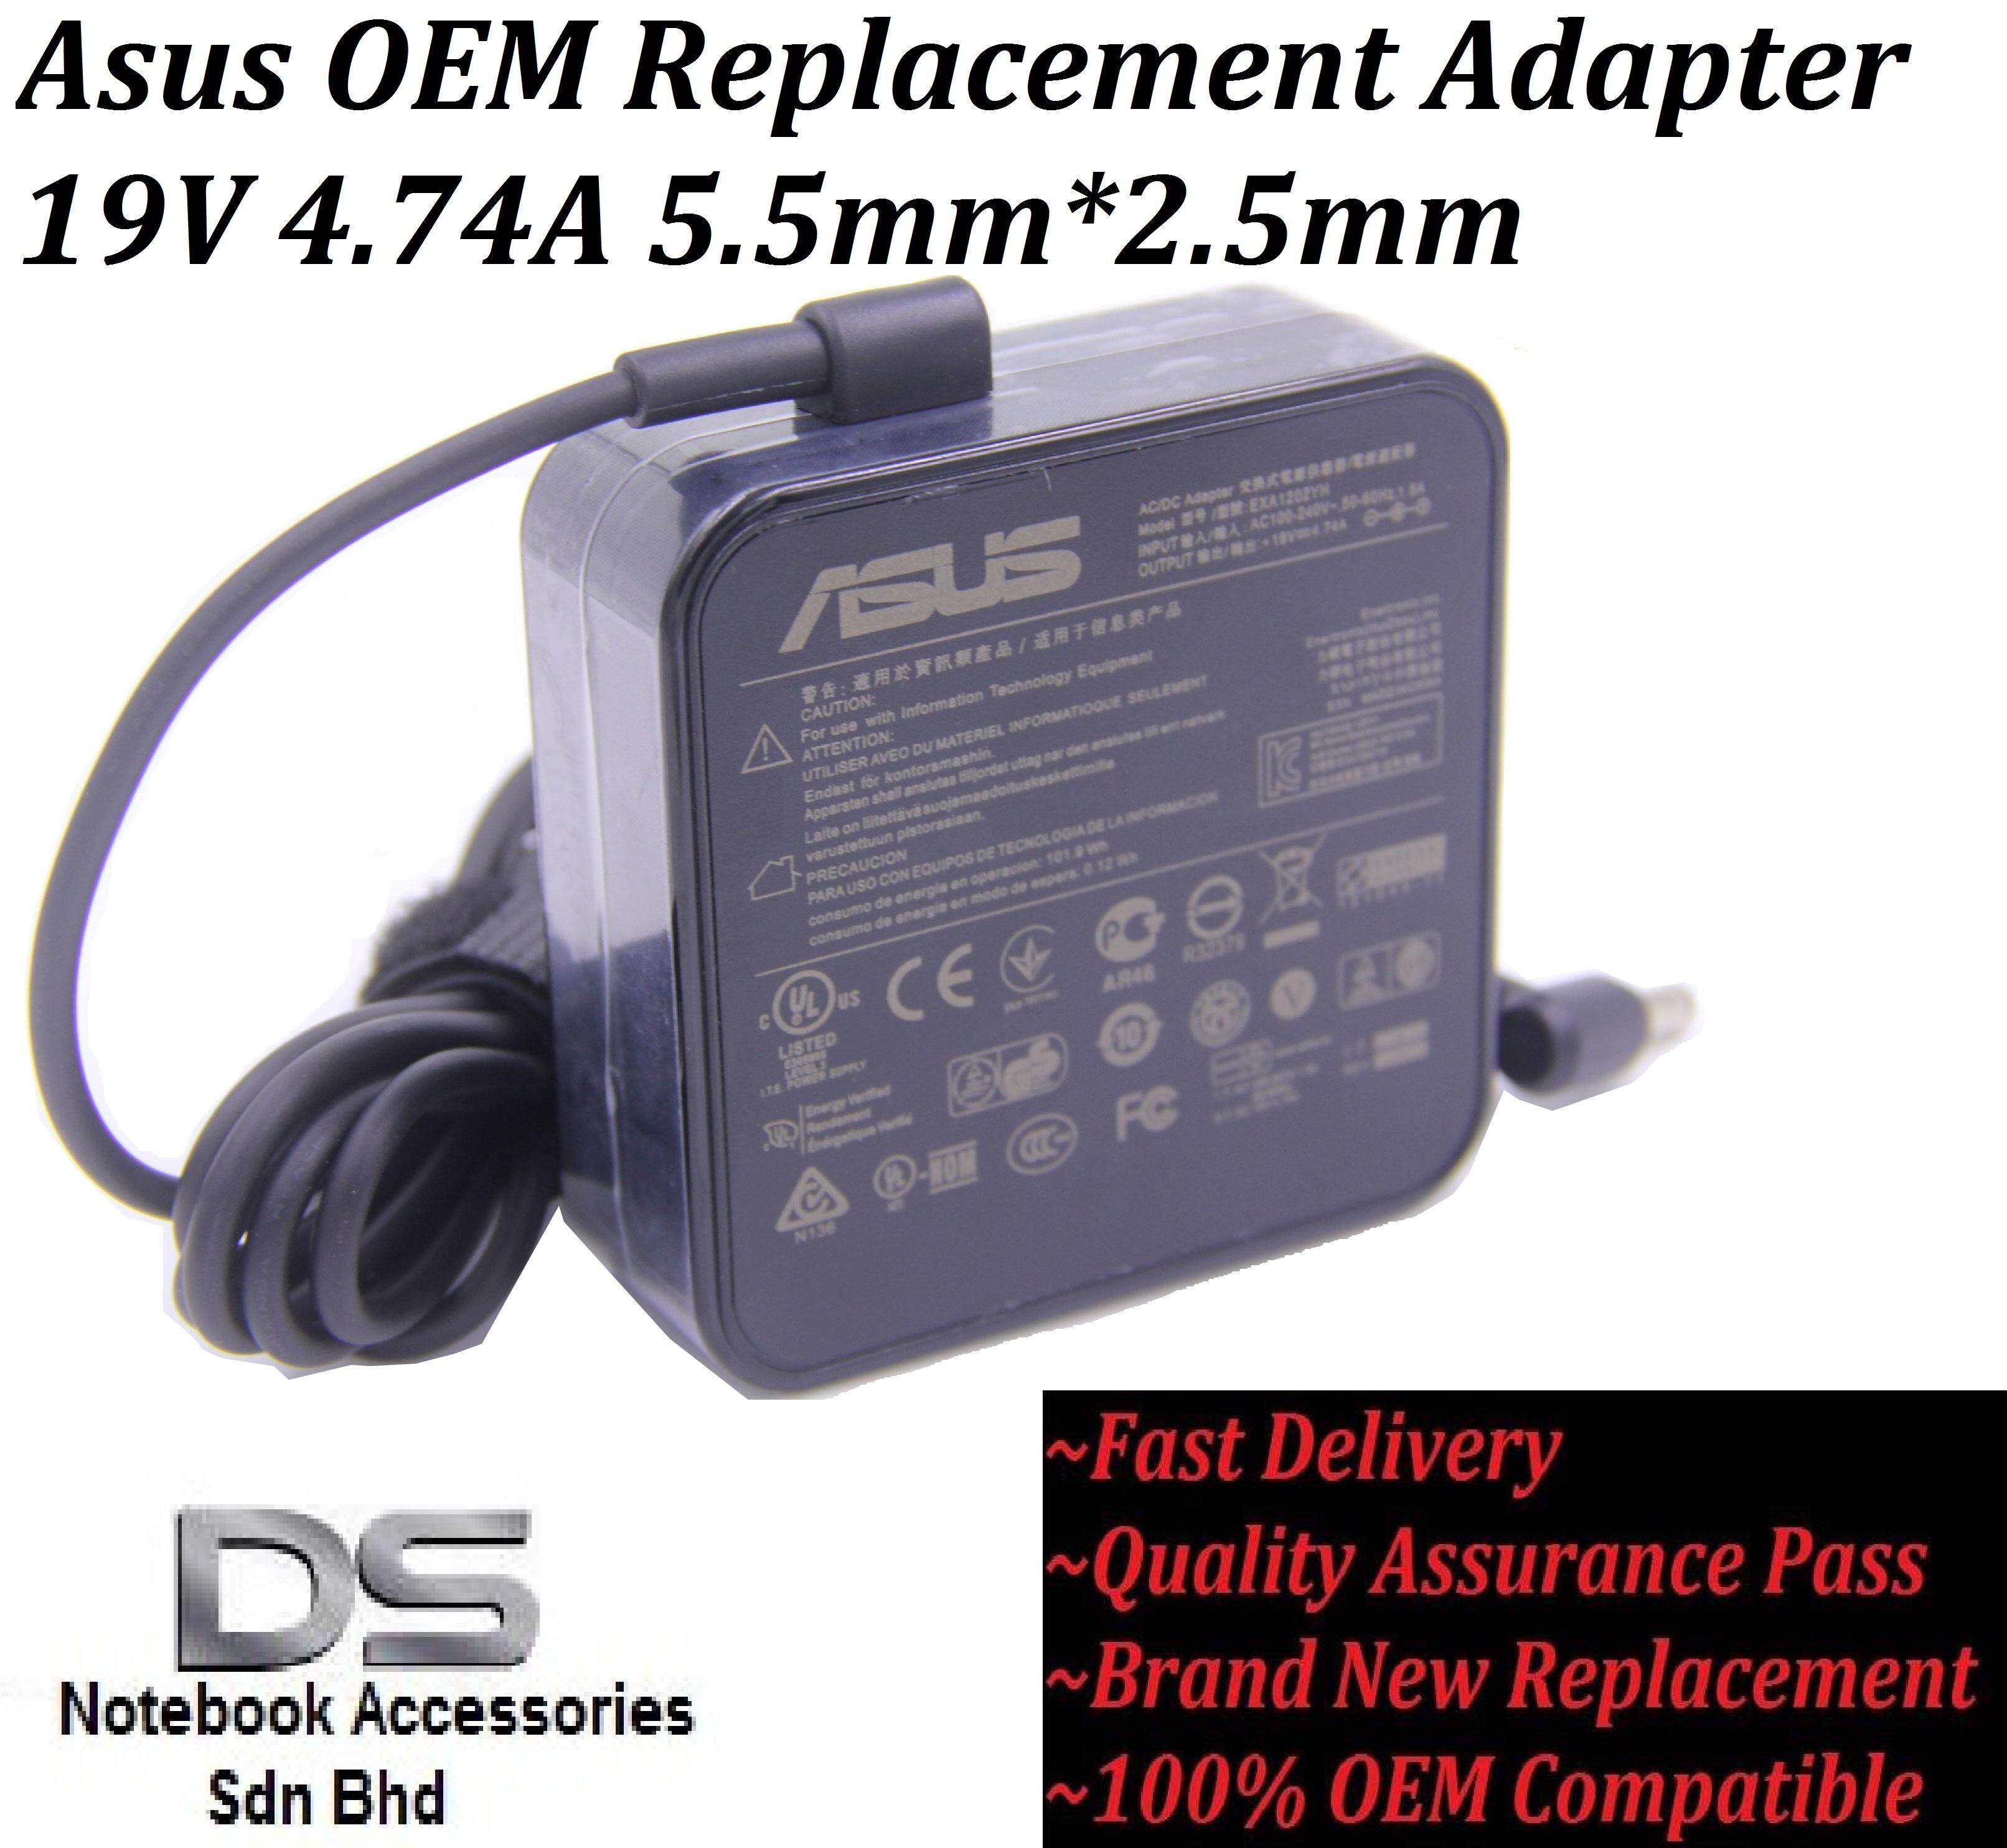 High Quality Asus Replacement Adapter for Asus M6800RF Series 19V 4.74A 90W 5.5mm*2.5mm /Asus 19V 4.74A Adapter